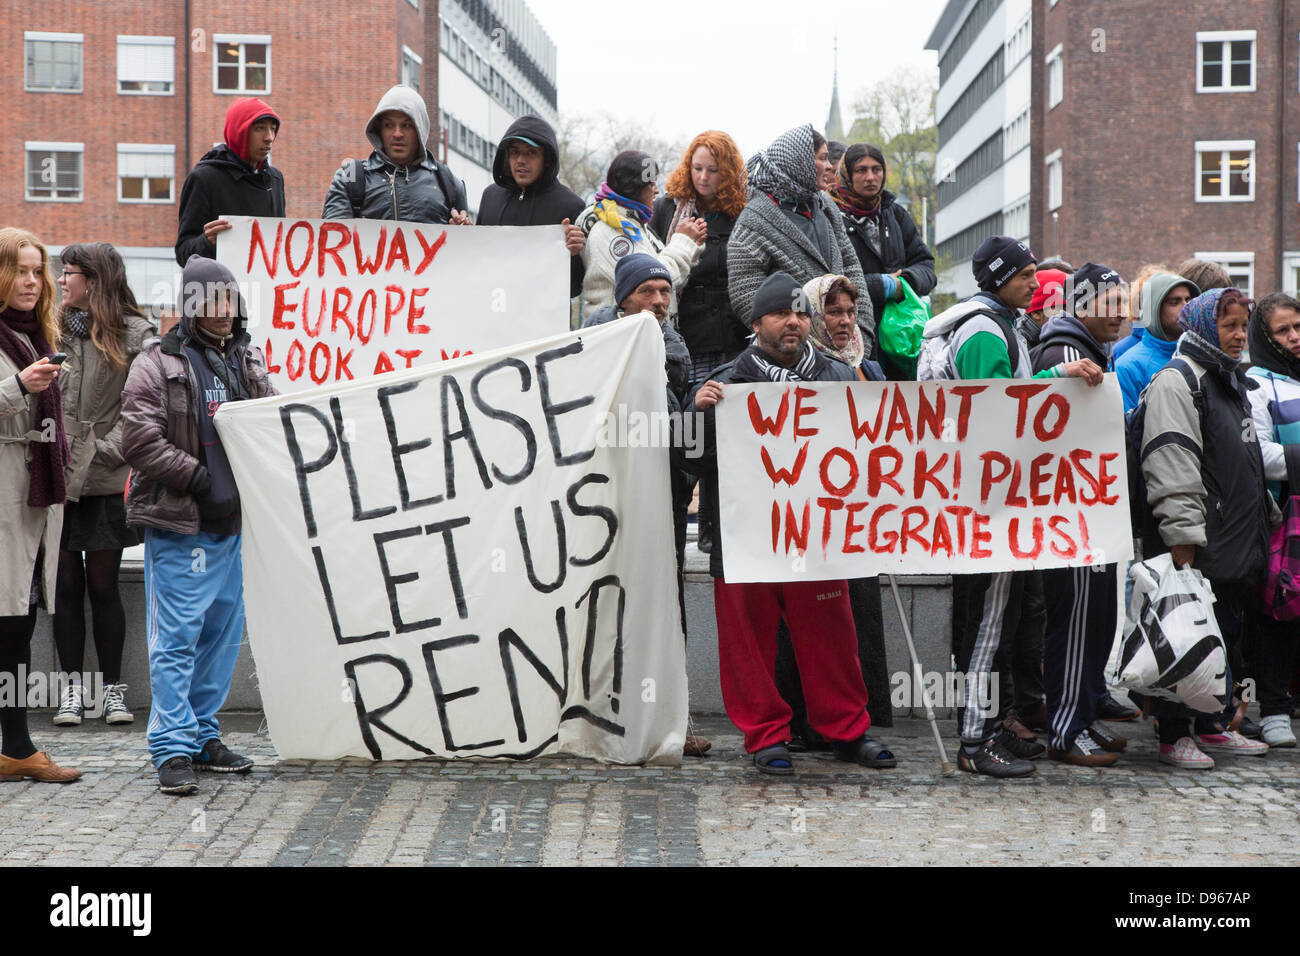 Roma migrants from Romania demonstrating for work and integration in front of the town hall of Oslo - Stock Image